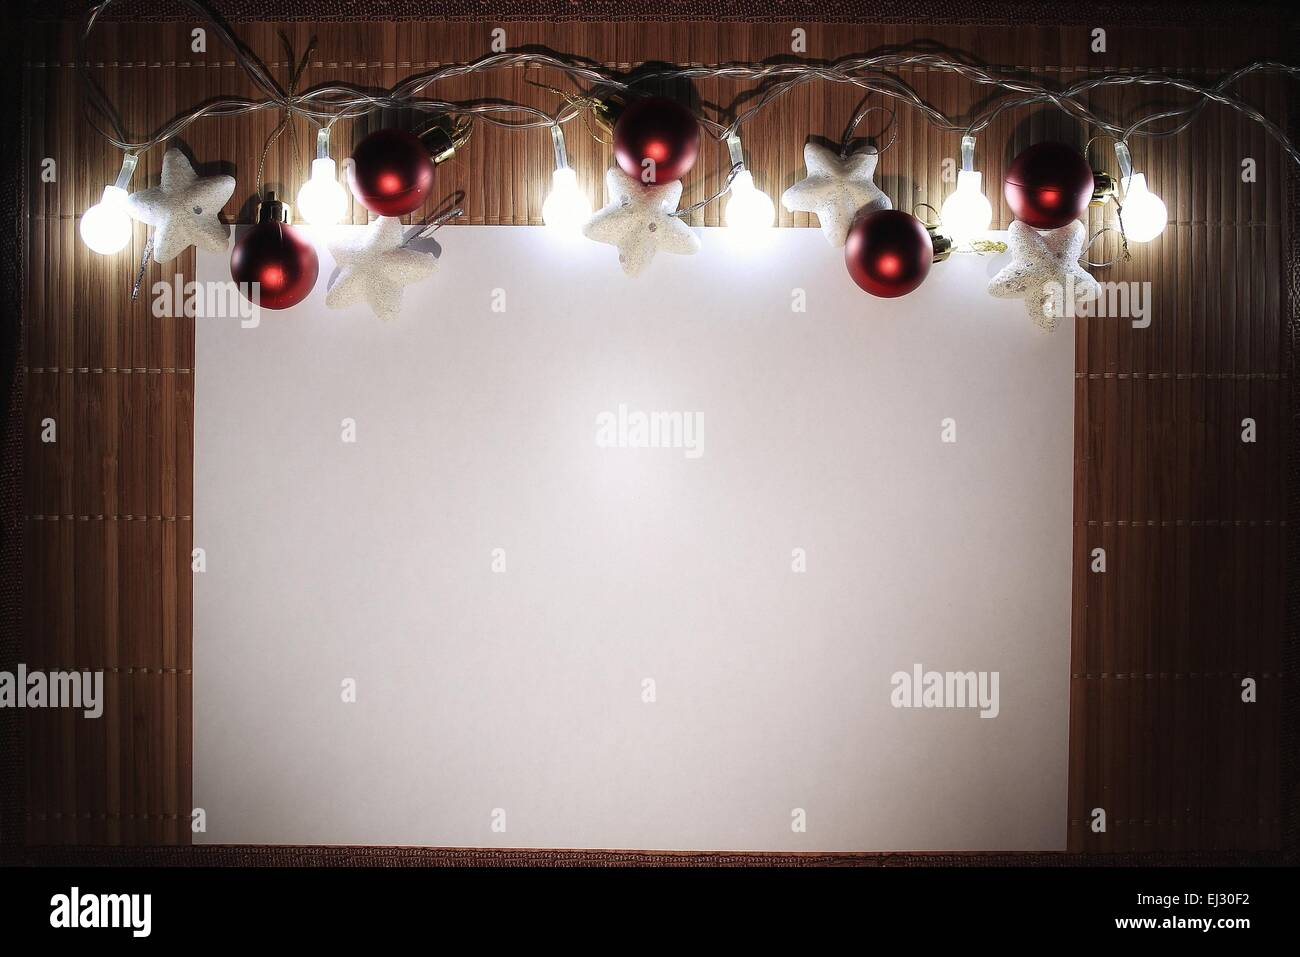 card happy new year and merry christmas blank white sheet of paper